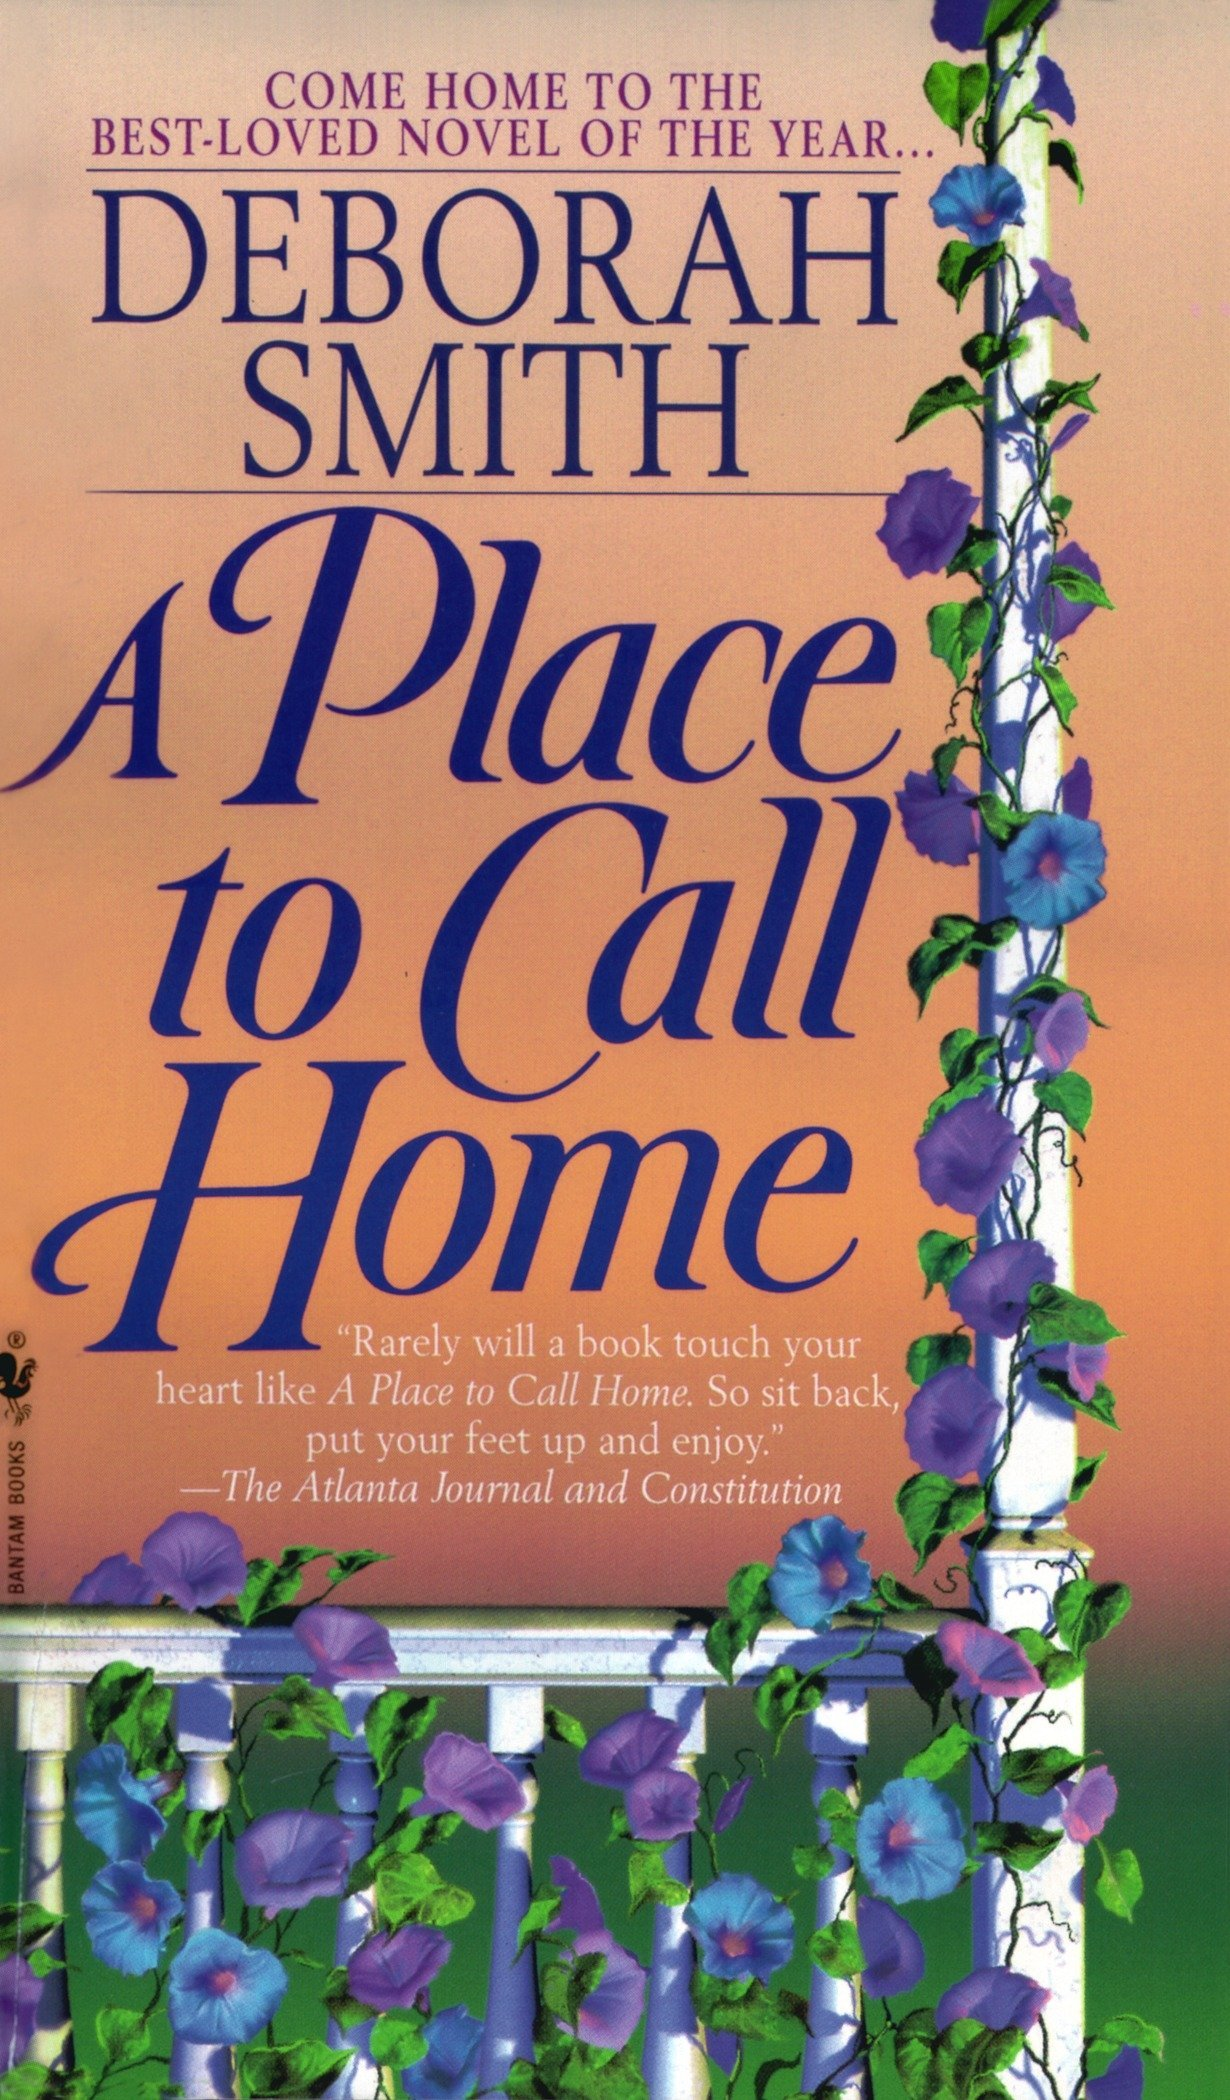 a place to call home by deborah smith reviews a place called home book Follow the Author. Deborah Smith